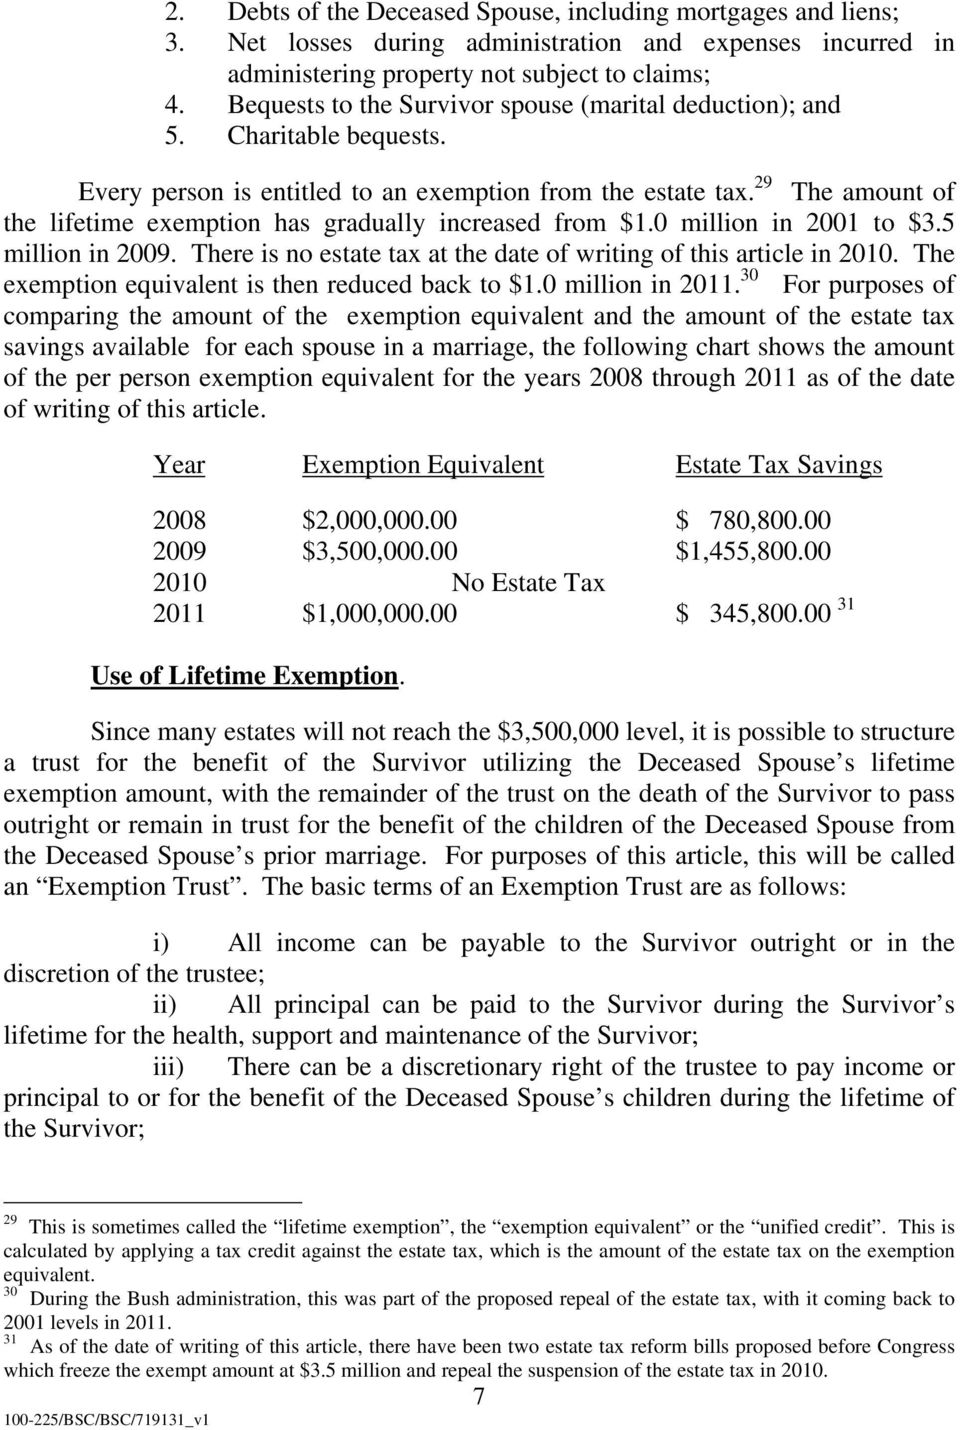 29 The amount of the lifetime exemption has gradually increased from $1.0 million in 2001 to $3.5 million in 2009. There is no estate tax at the date of writing of this article in 2010.